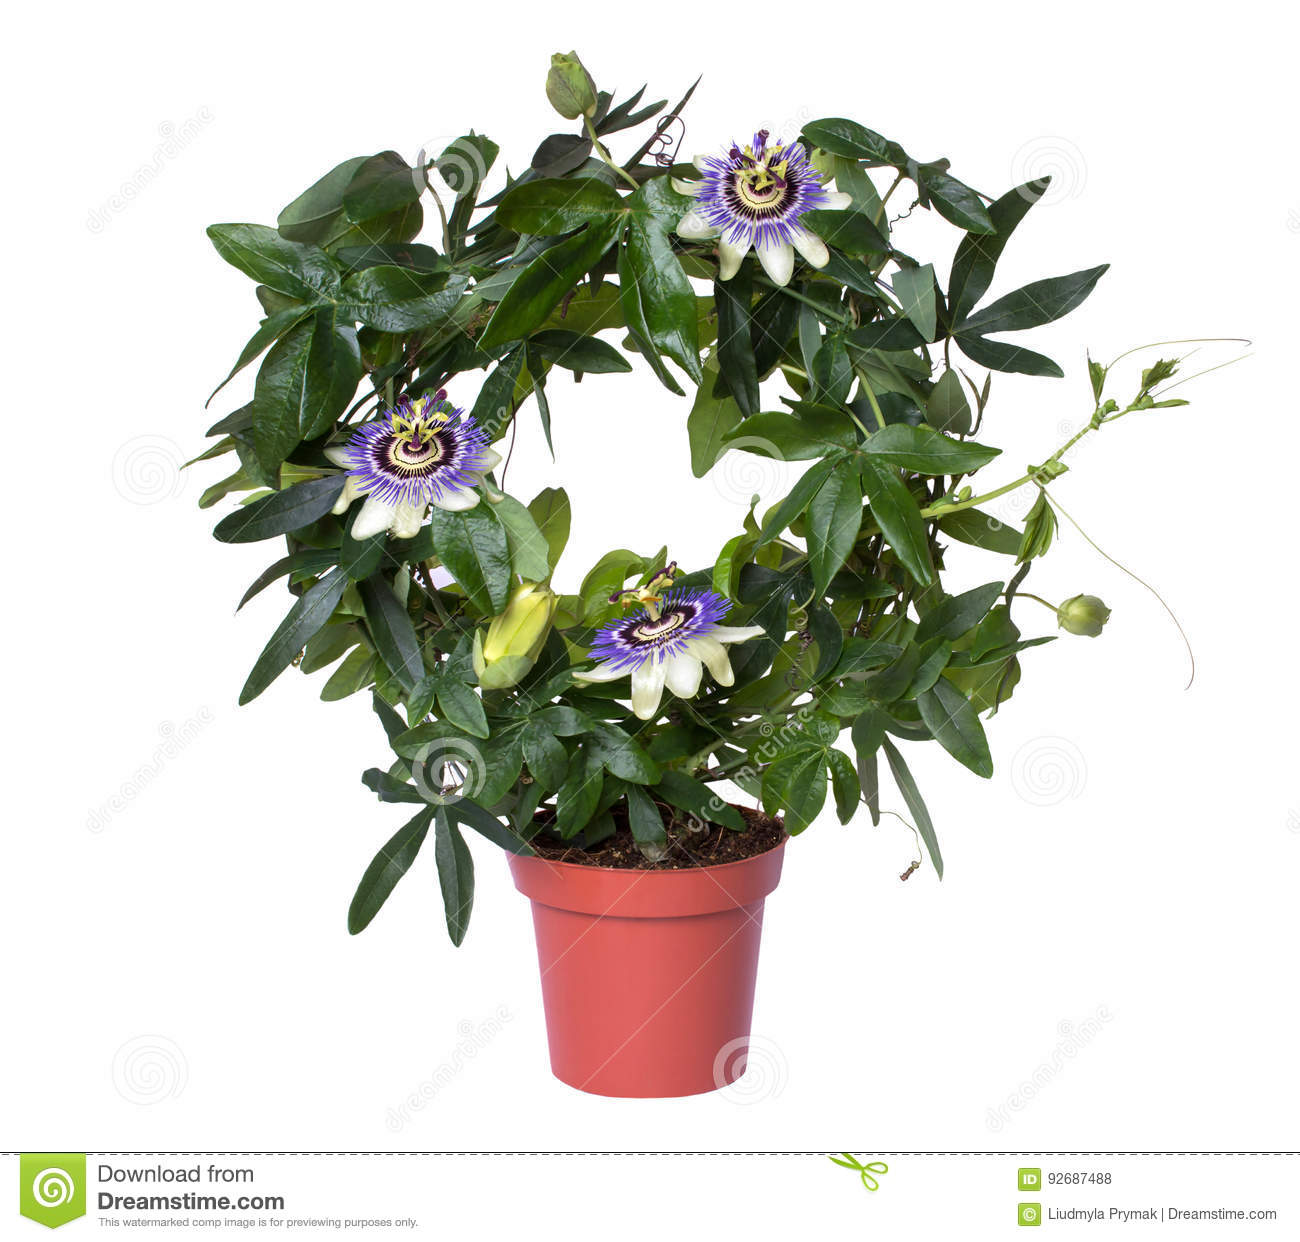 Flowering passiflora passionflower in a pot isolated on white background.